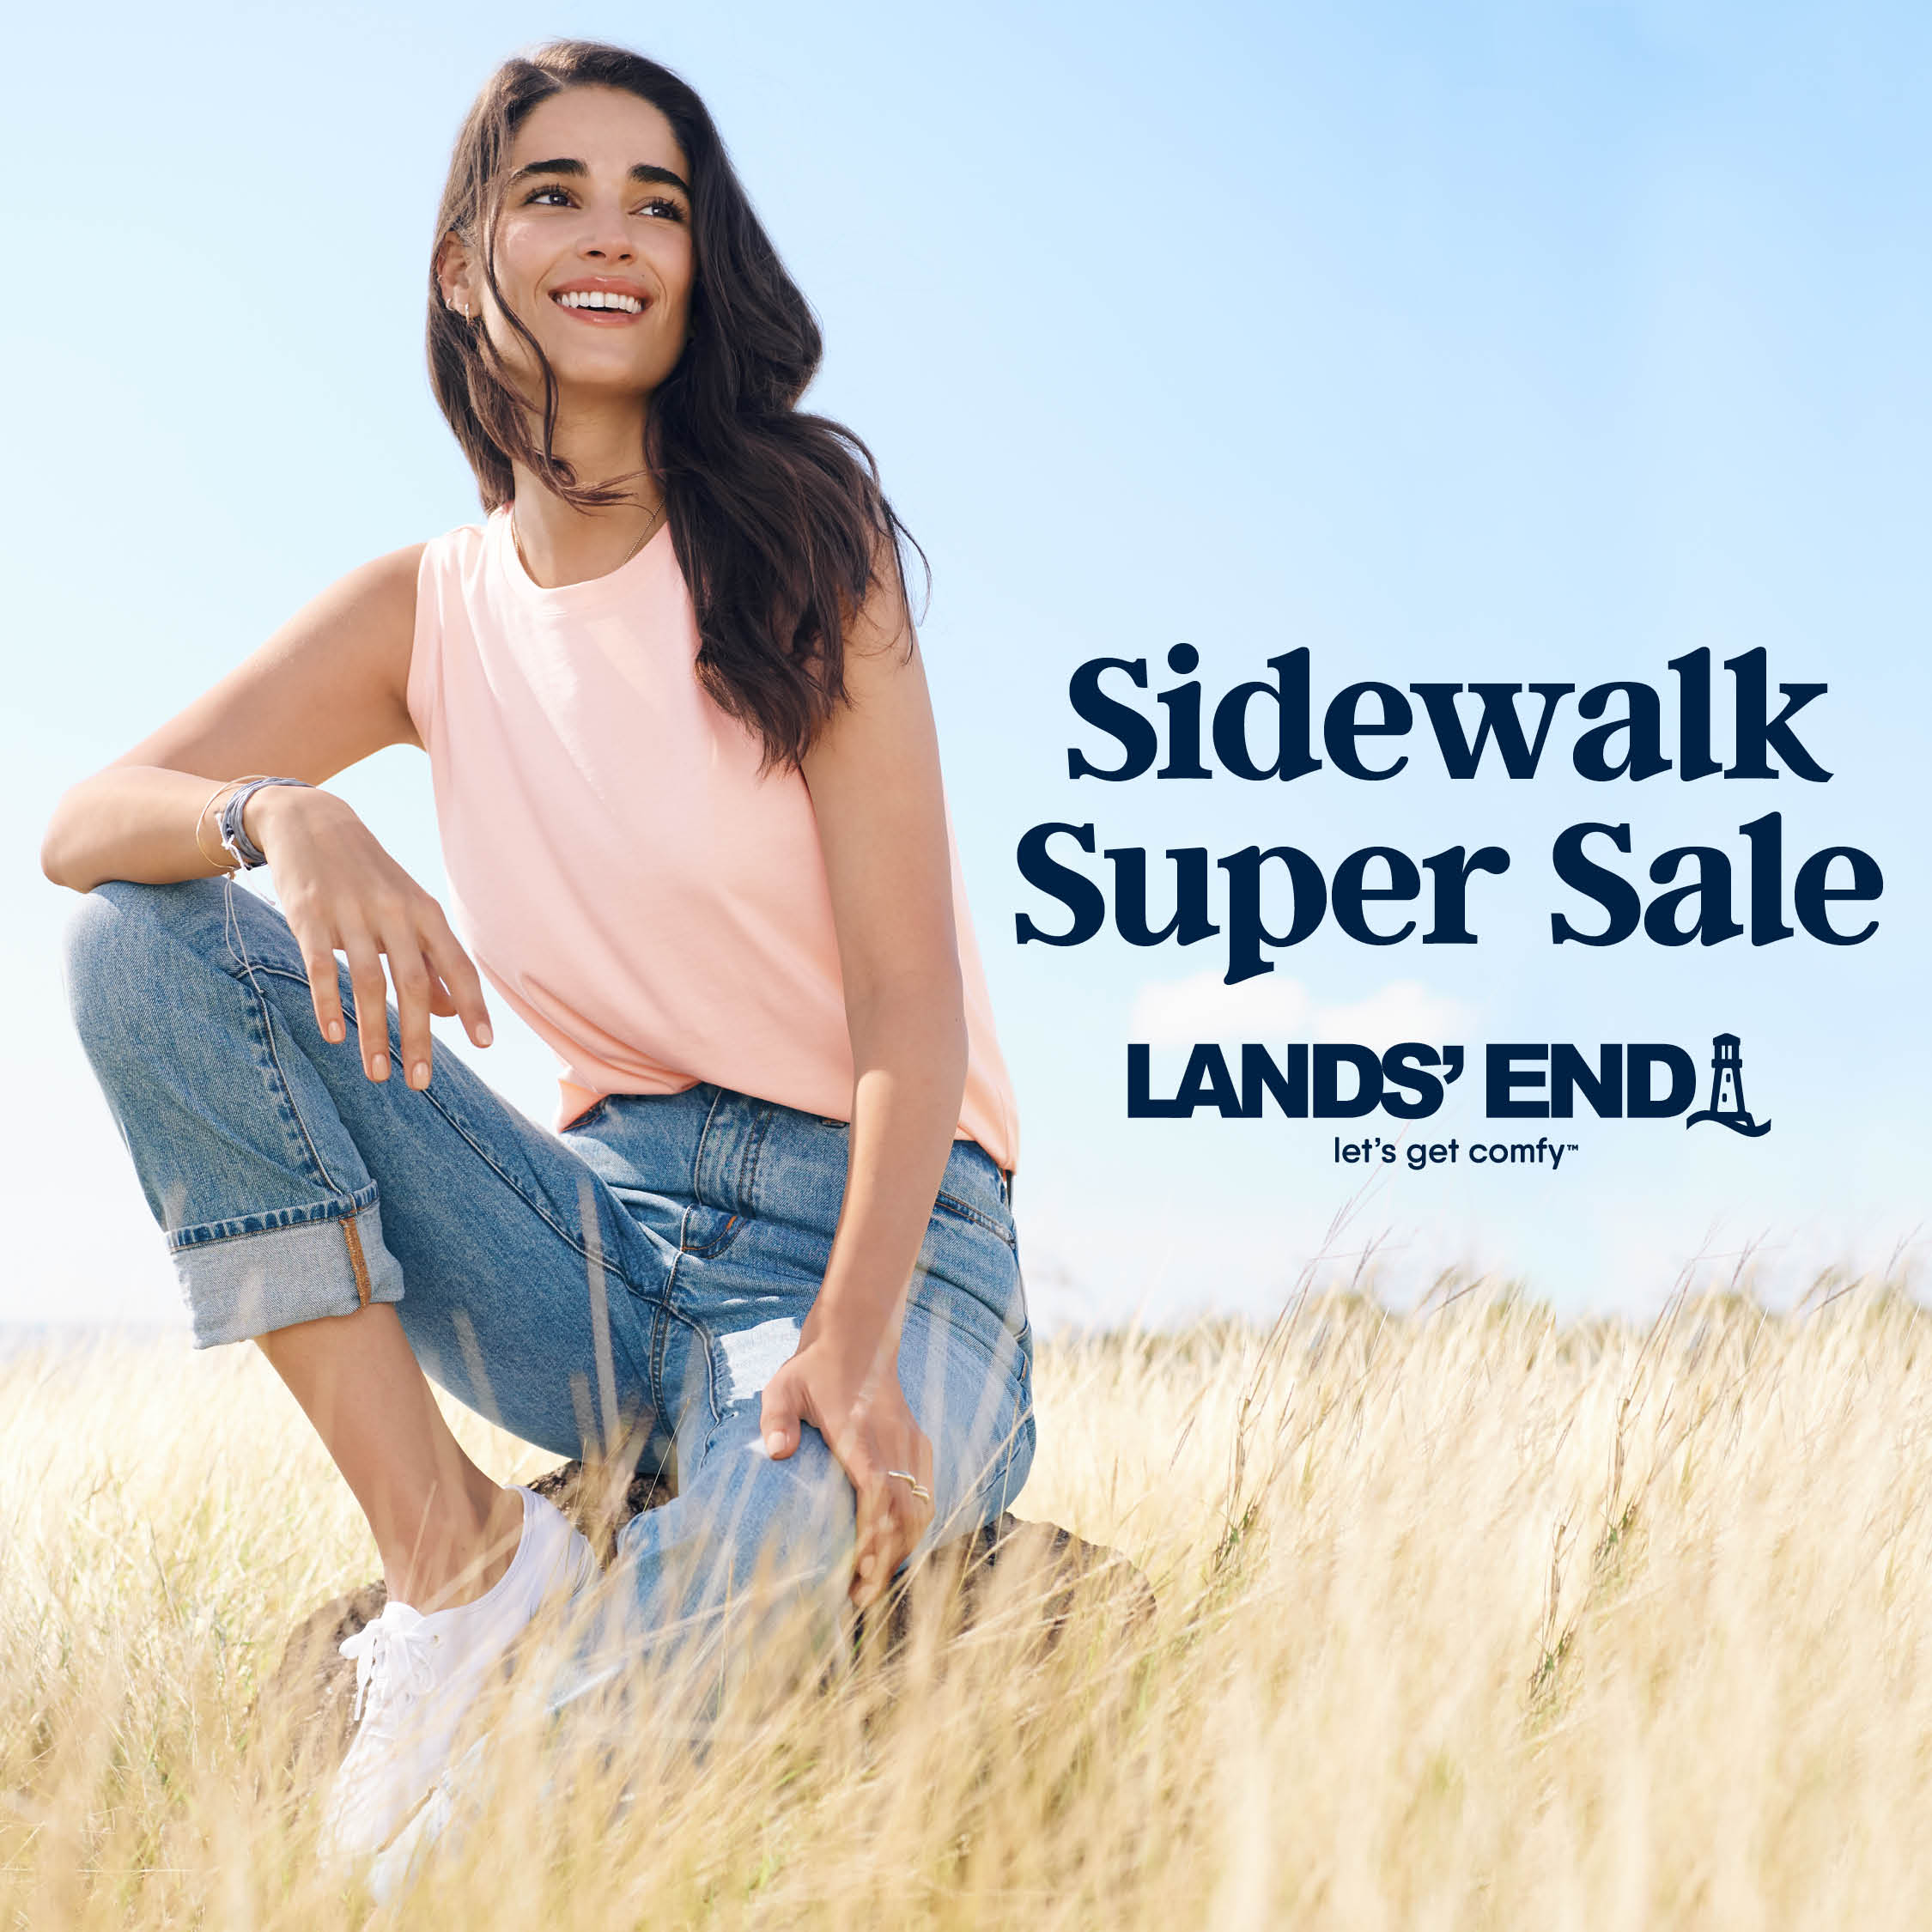 Sidewalk Super Sale from Lands' End